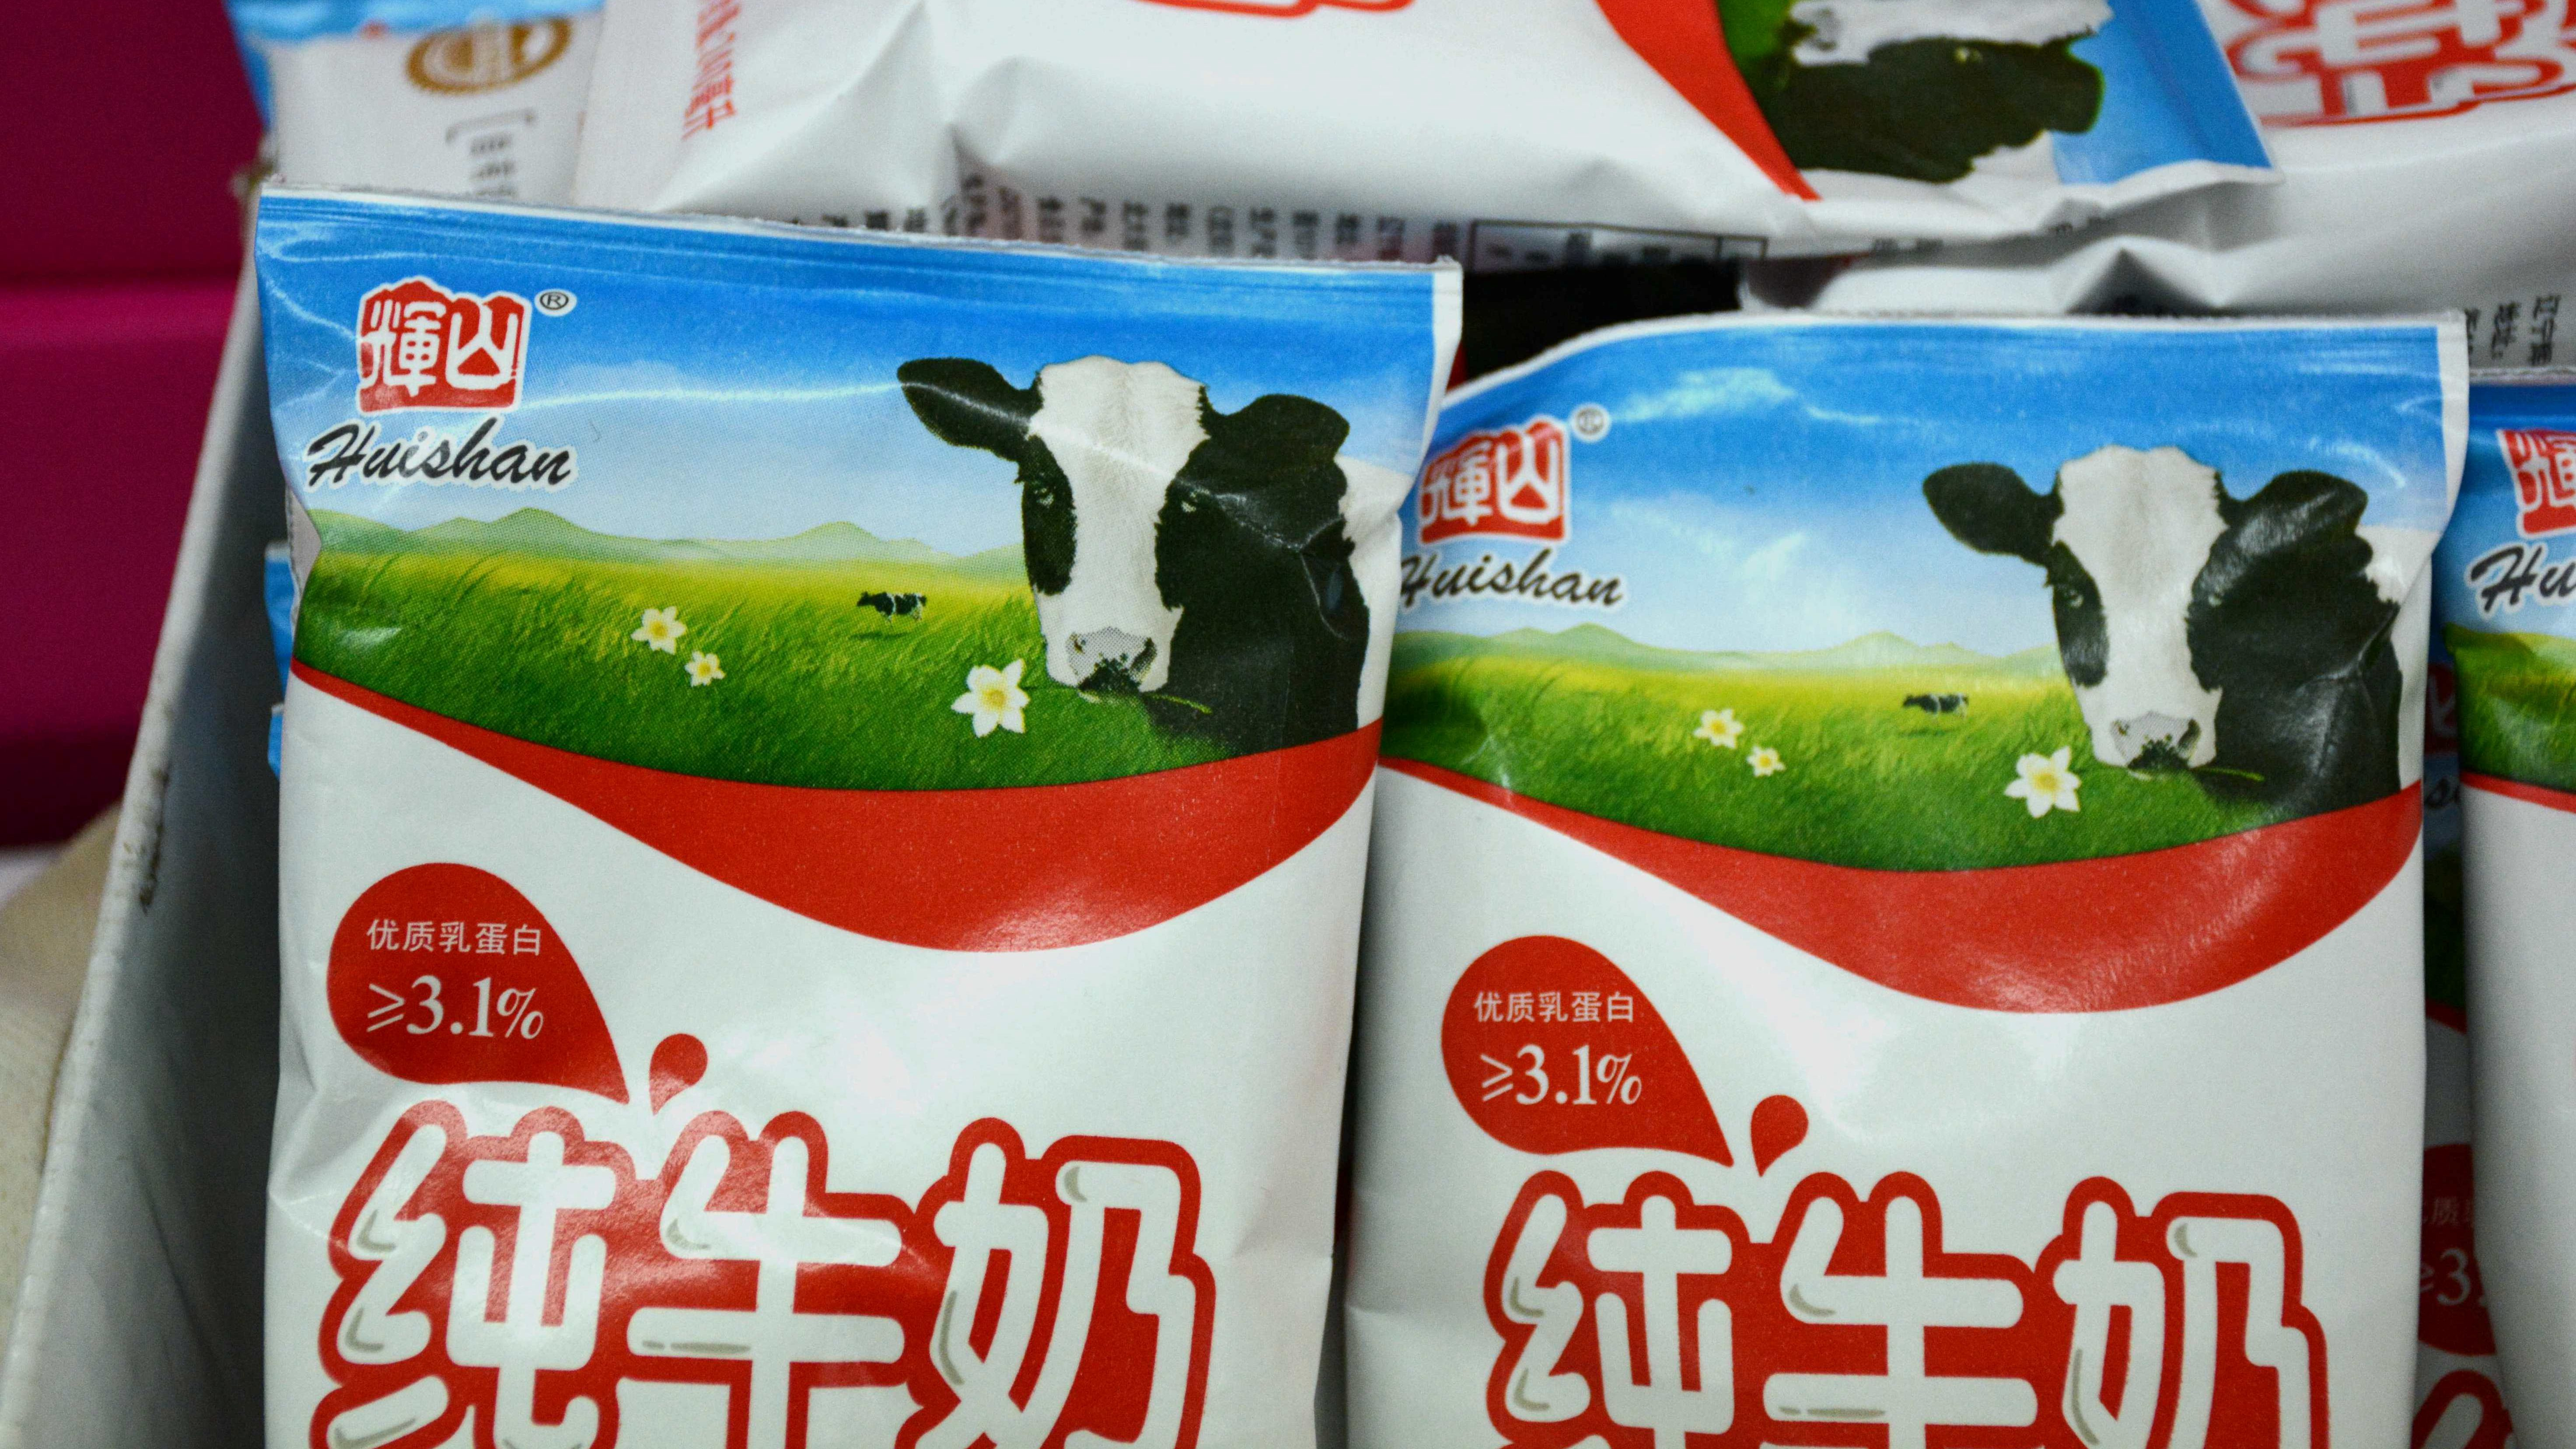 Products of Huishan Dairy are seen at a supermarket in Shenyang, Liaoning province, China March 25, 2017.